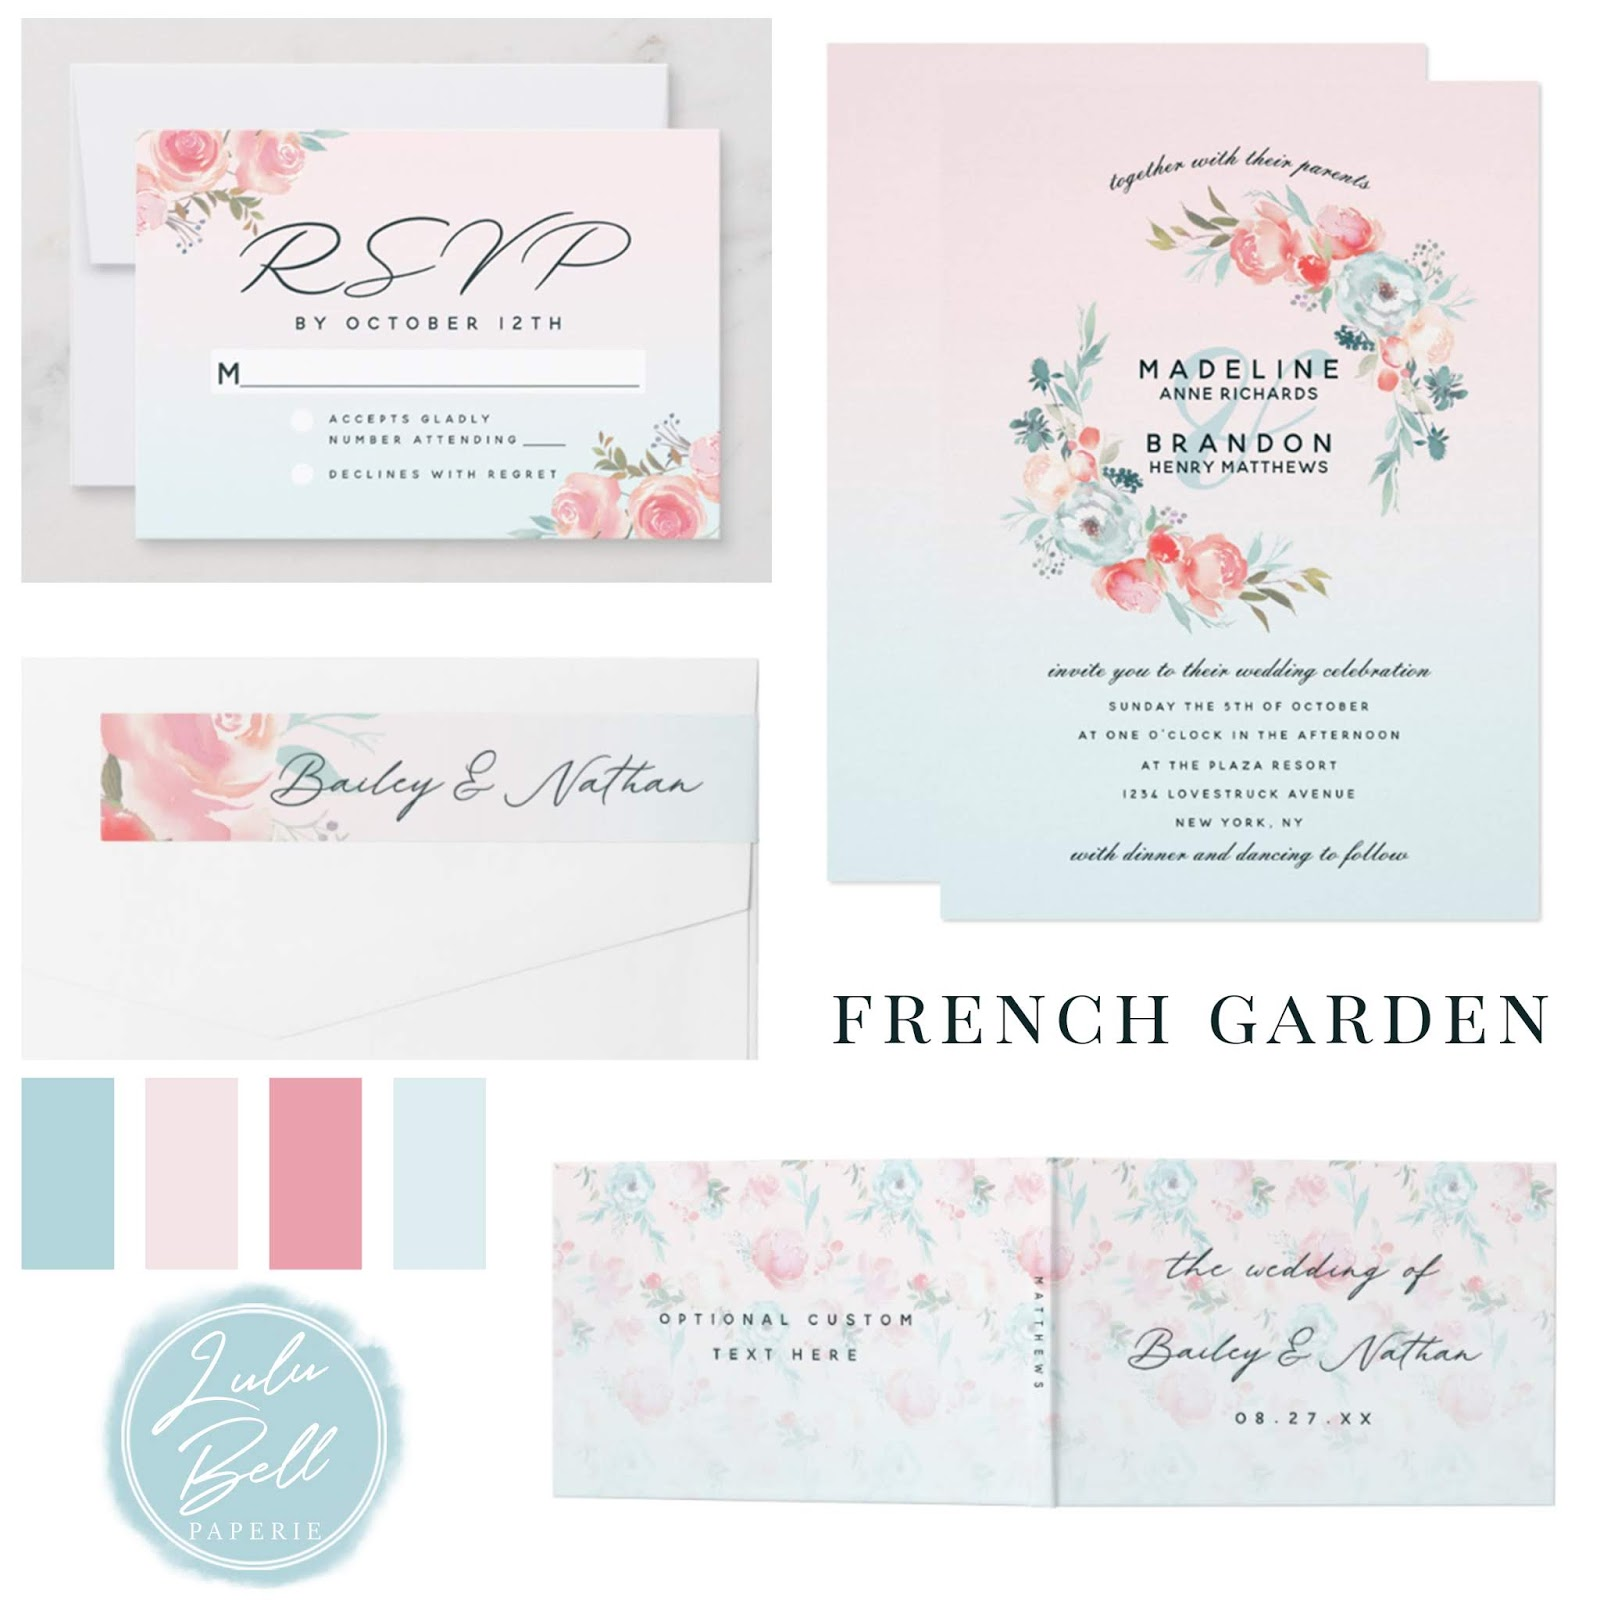 French Garden Floral Wedding Suite - Wedding Invitations, RSVP cards, Return Address Labels, and Guestbook